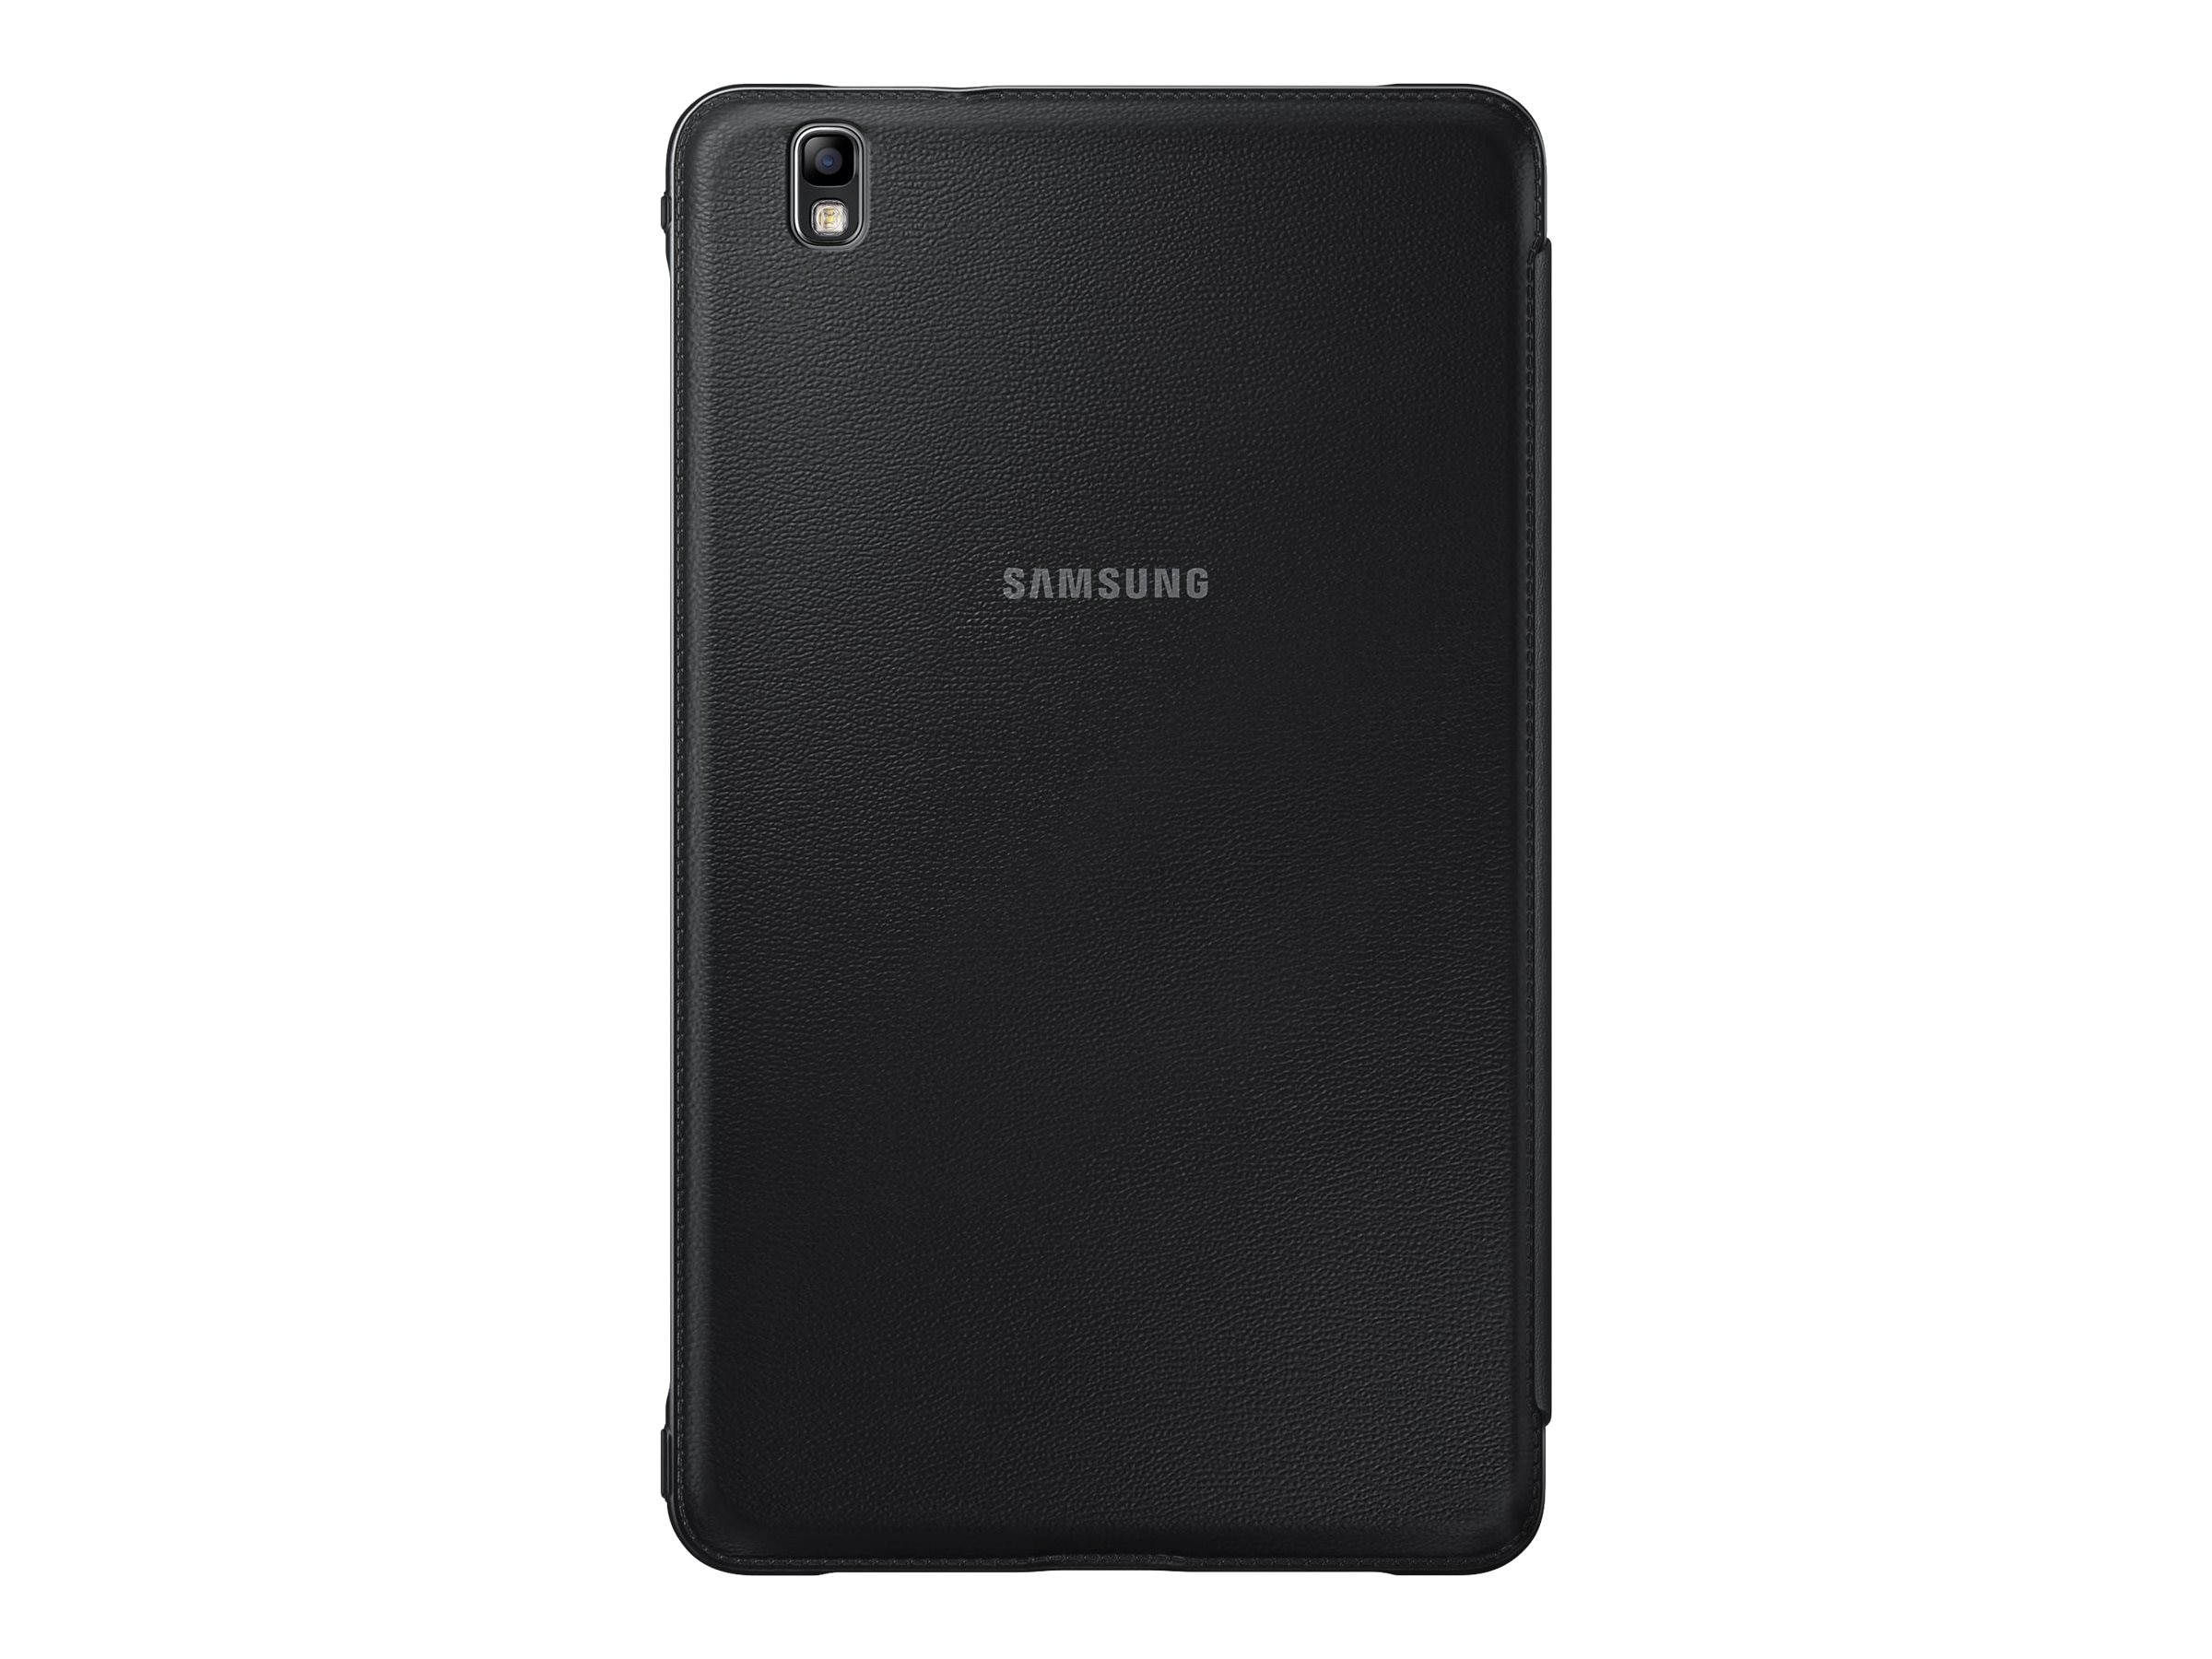 Samsung Galaxy Tab Pro 8.4 Book Cover, Black, EF-BT320WBEGUJ